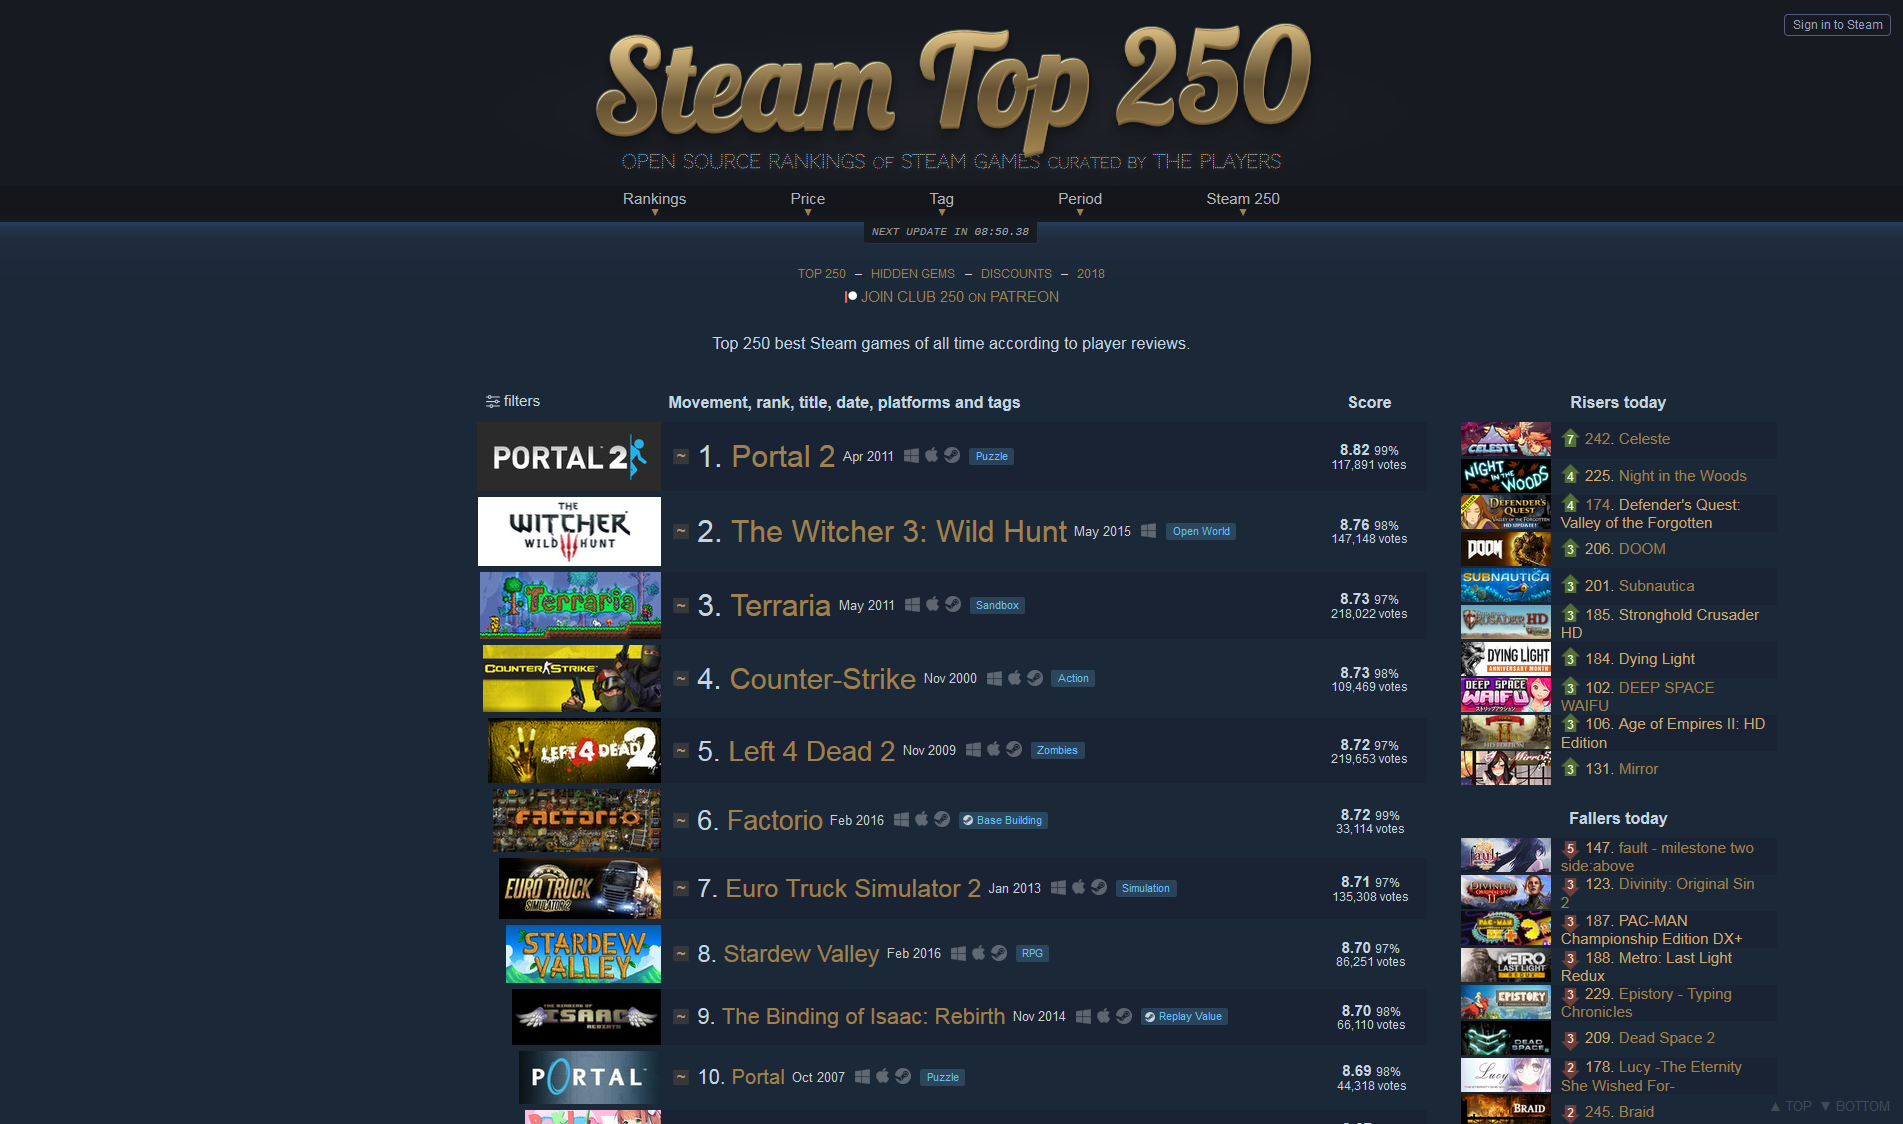 how to find own steam id